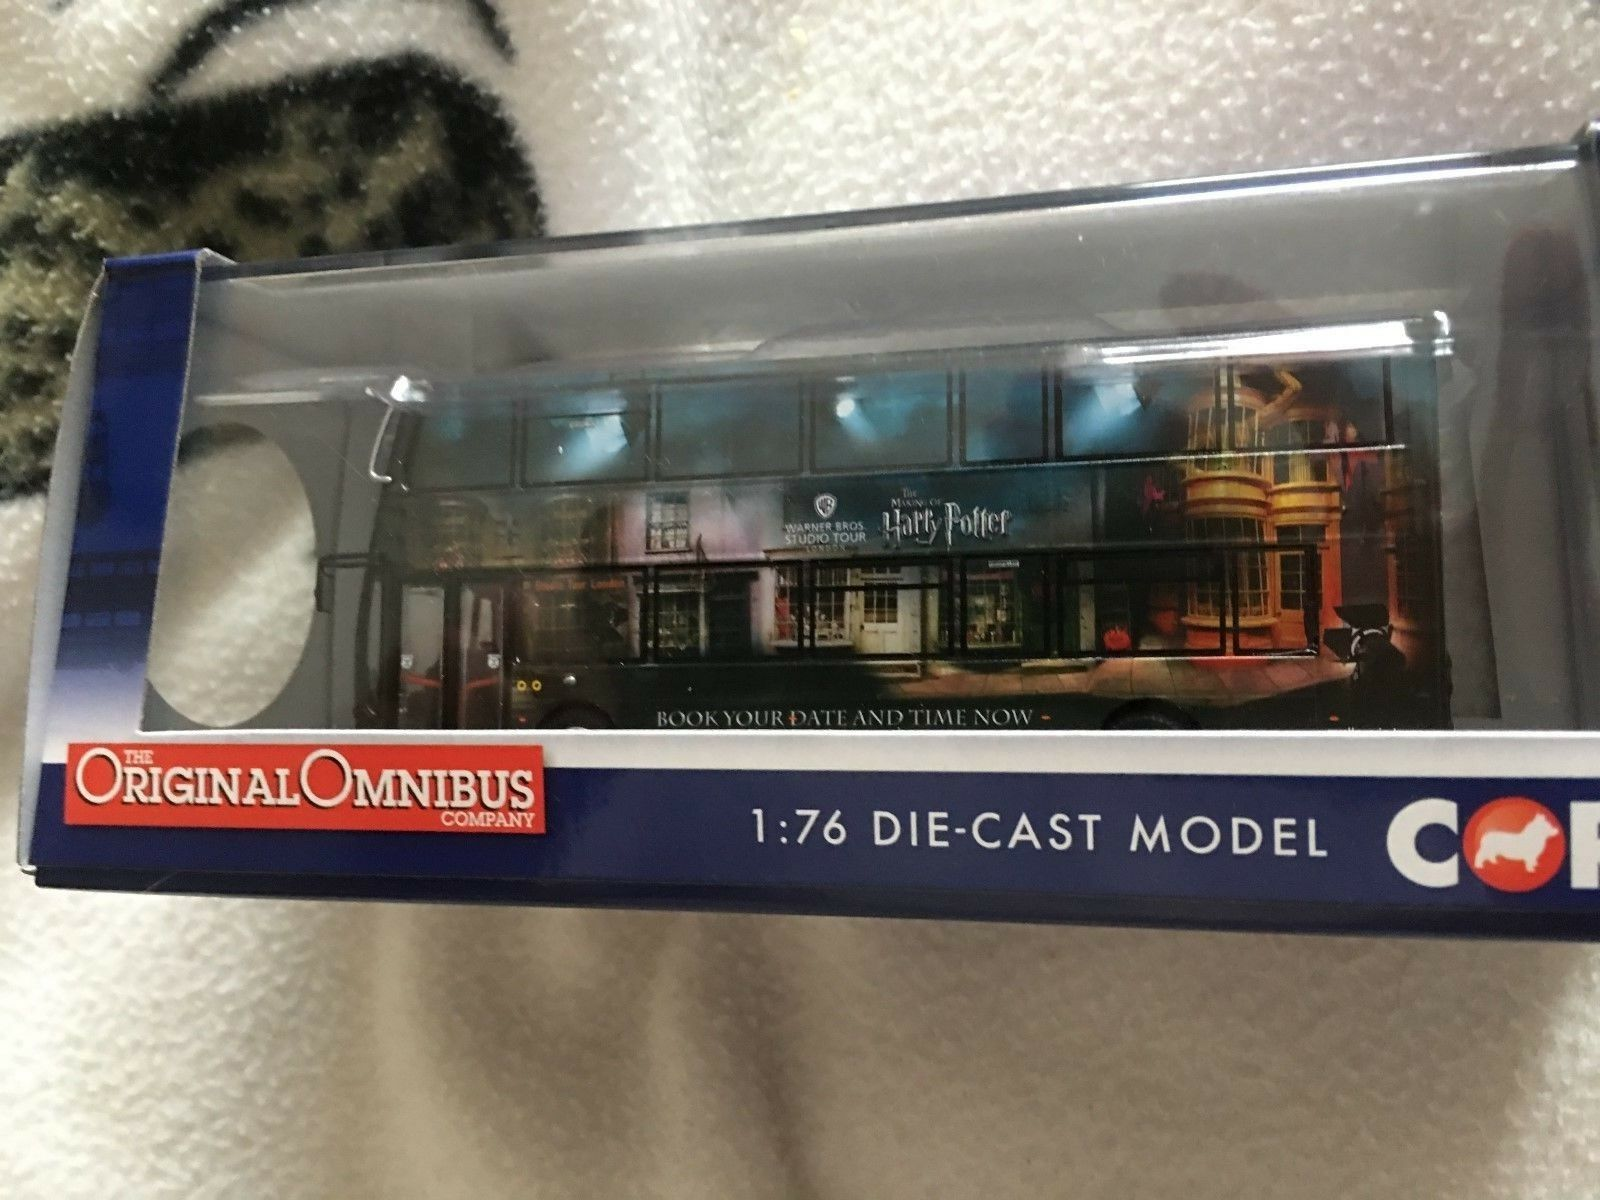 Wright Eclipse Gemni 2, Harry Potter Warner Bros. Studio Tour Bus Corgi Modelo